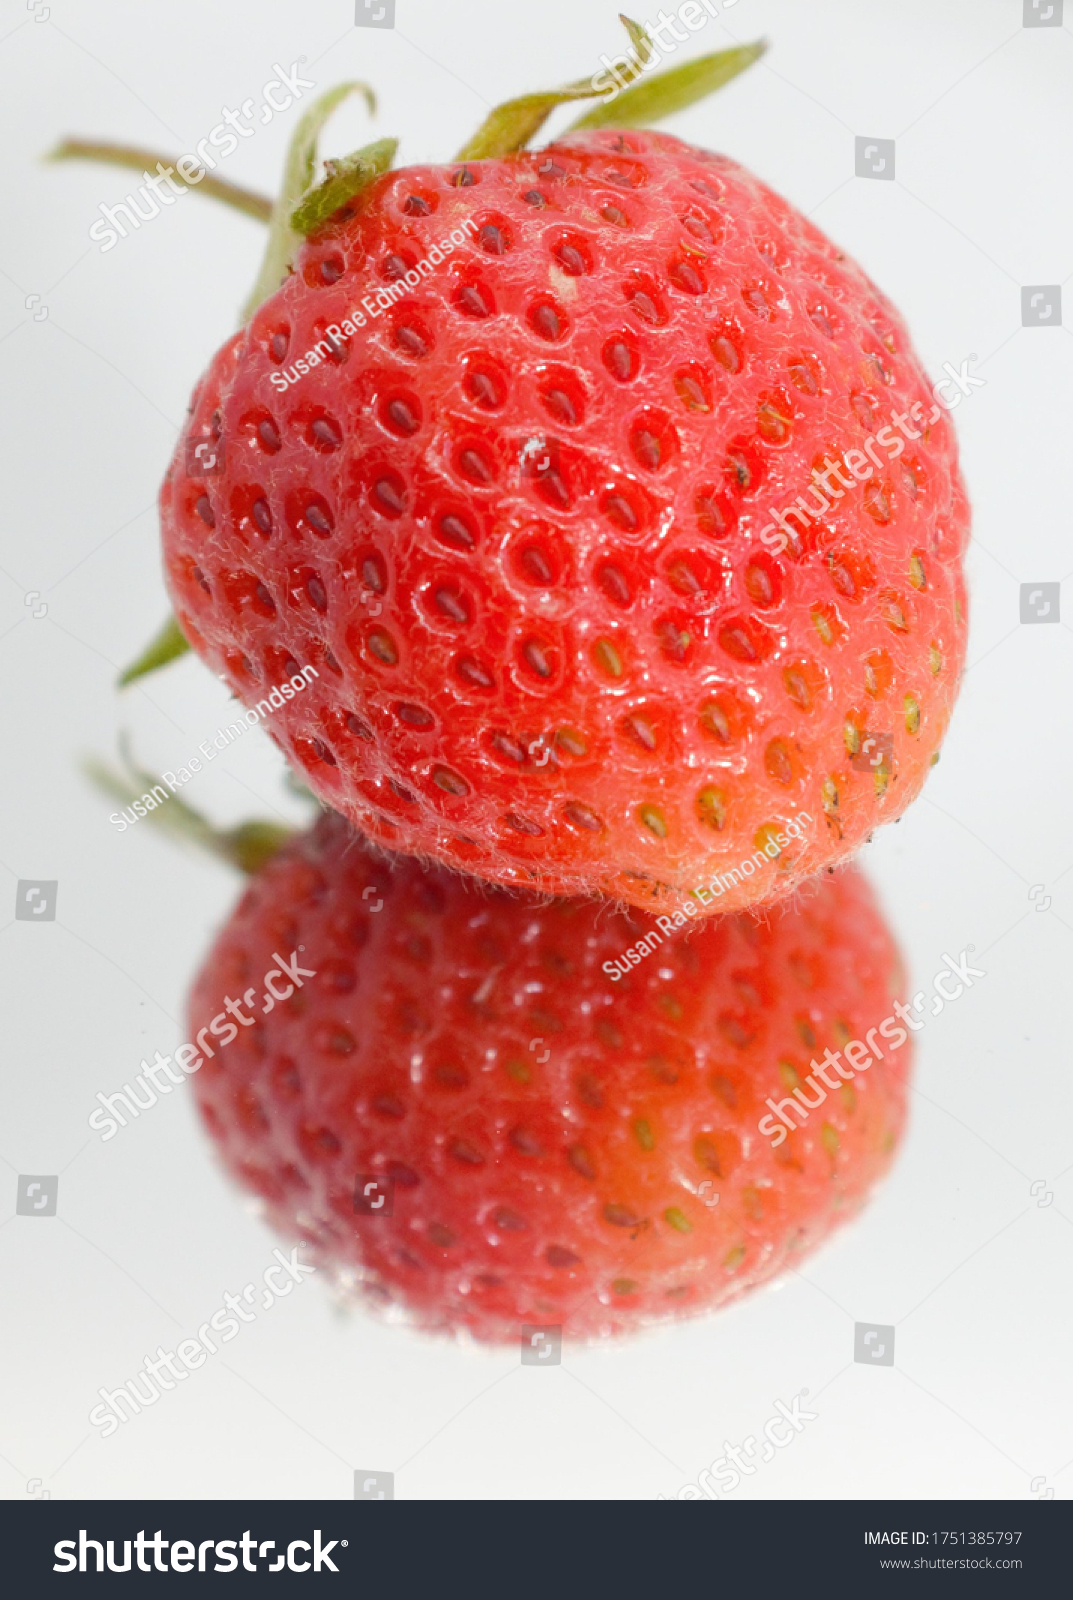 stock-photo-mirrored-close-up-of-a-ripe-